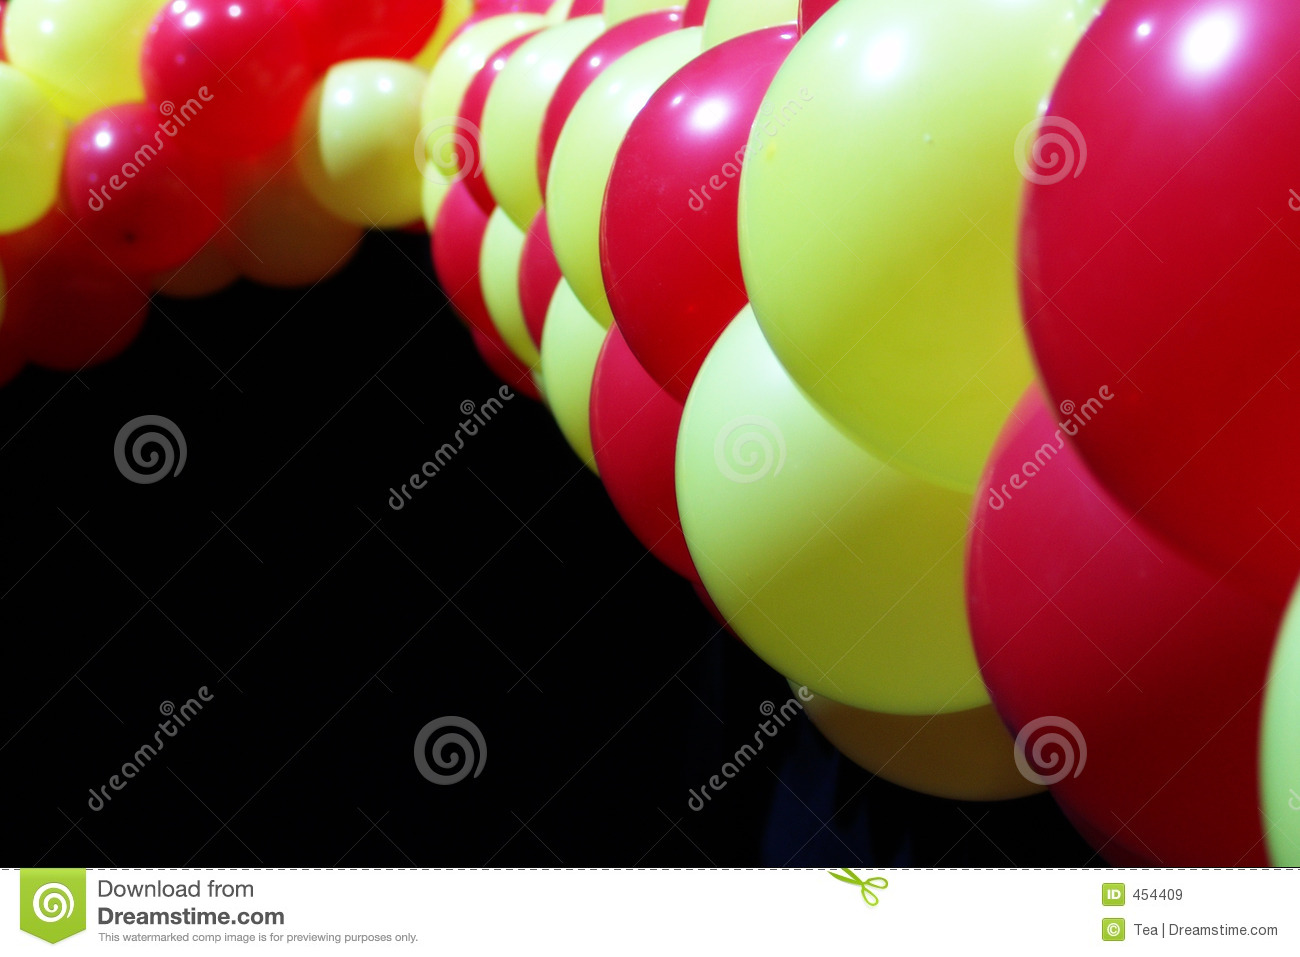 Download Red and yellow balloons stock image. Image of festival - 454409